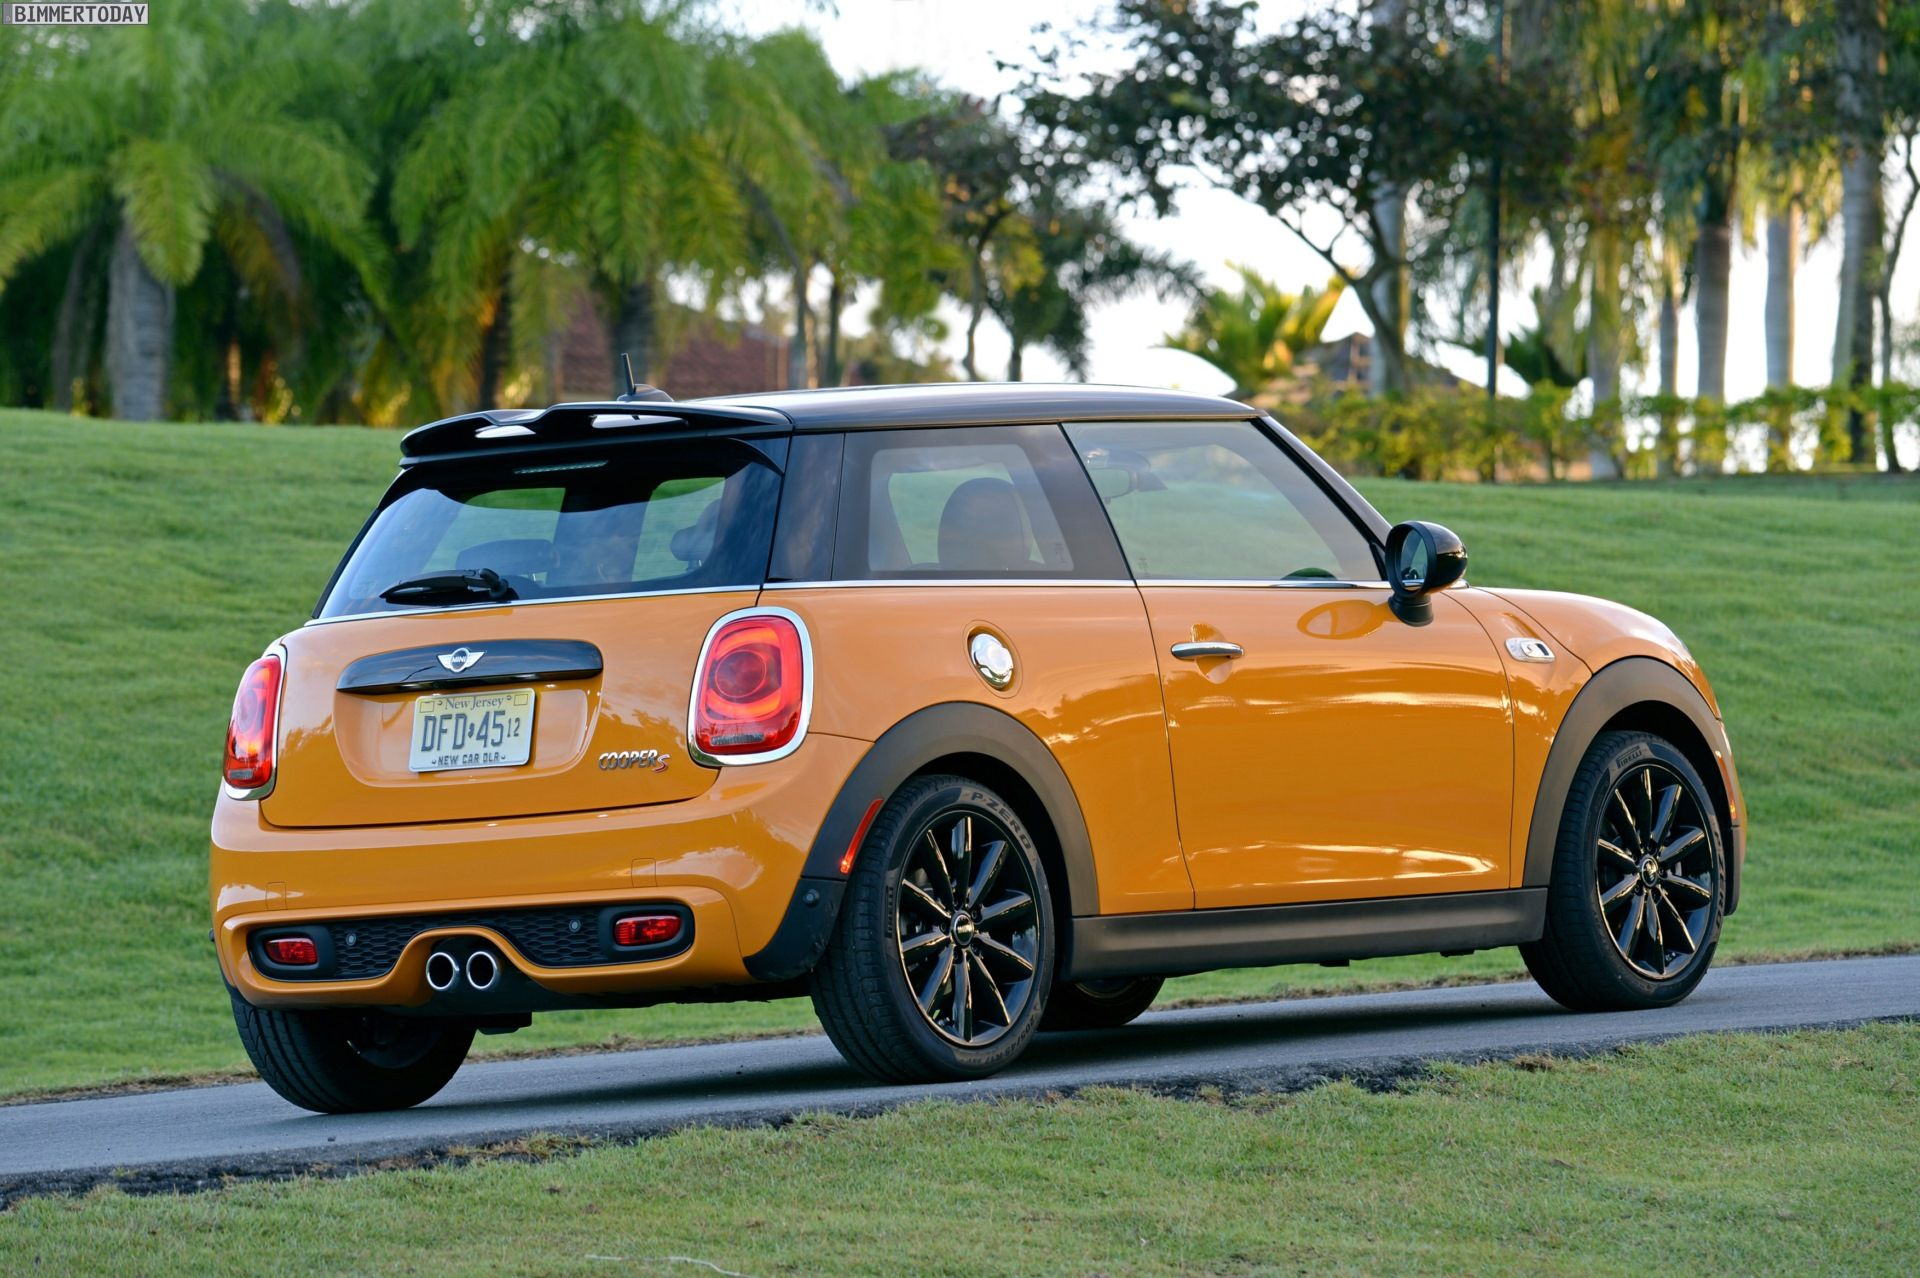 volcanic orange mini cooper s 2014 mini cooper s f56 volcanic orange puerto rico 18 mini s. Black Bedroom Furniture Sets. Home Design Ideas